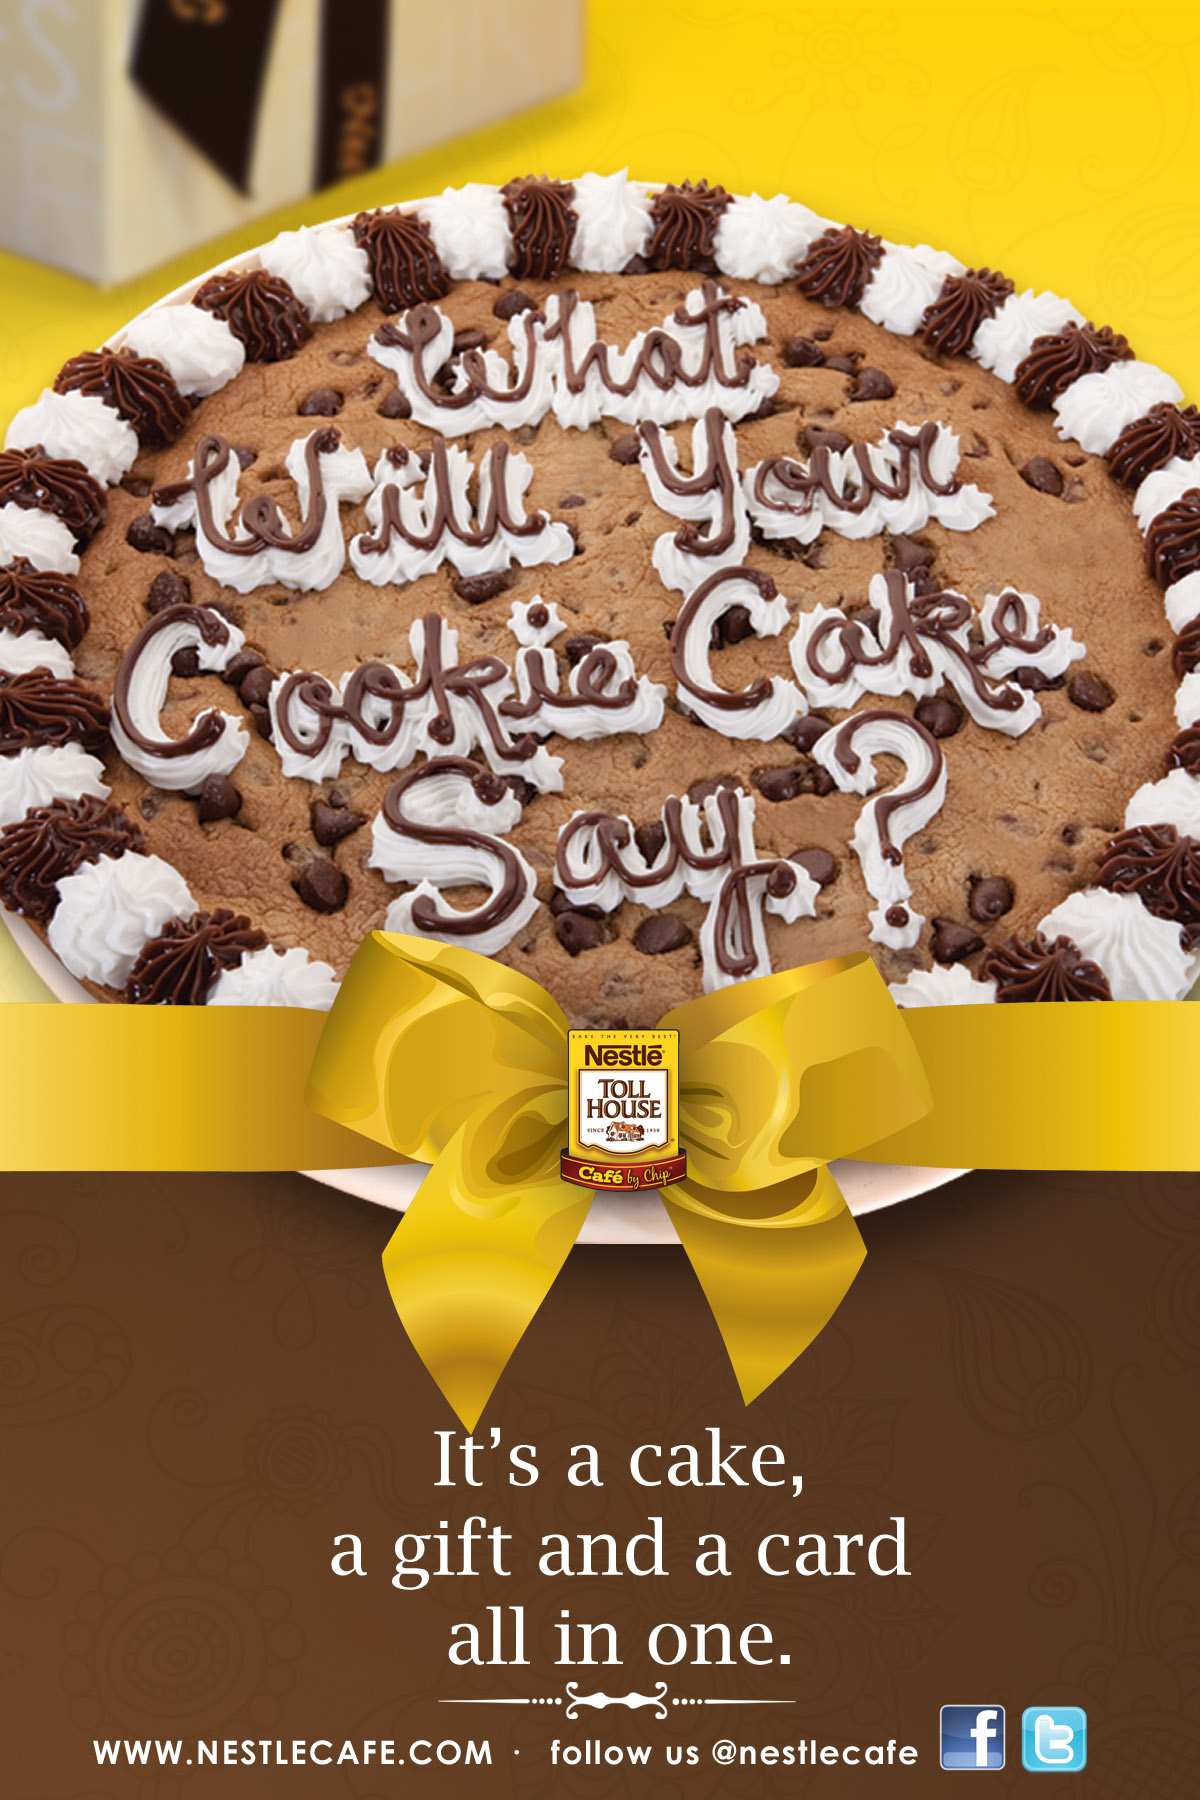 The Object Of My Confection Nestle Toll House Cafe By